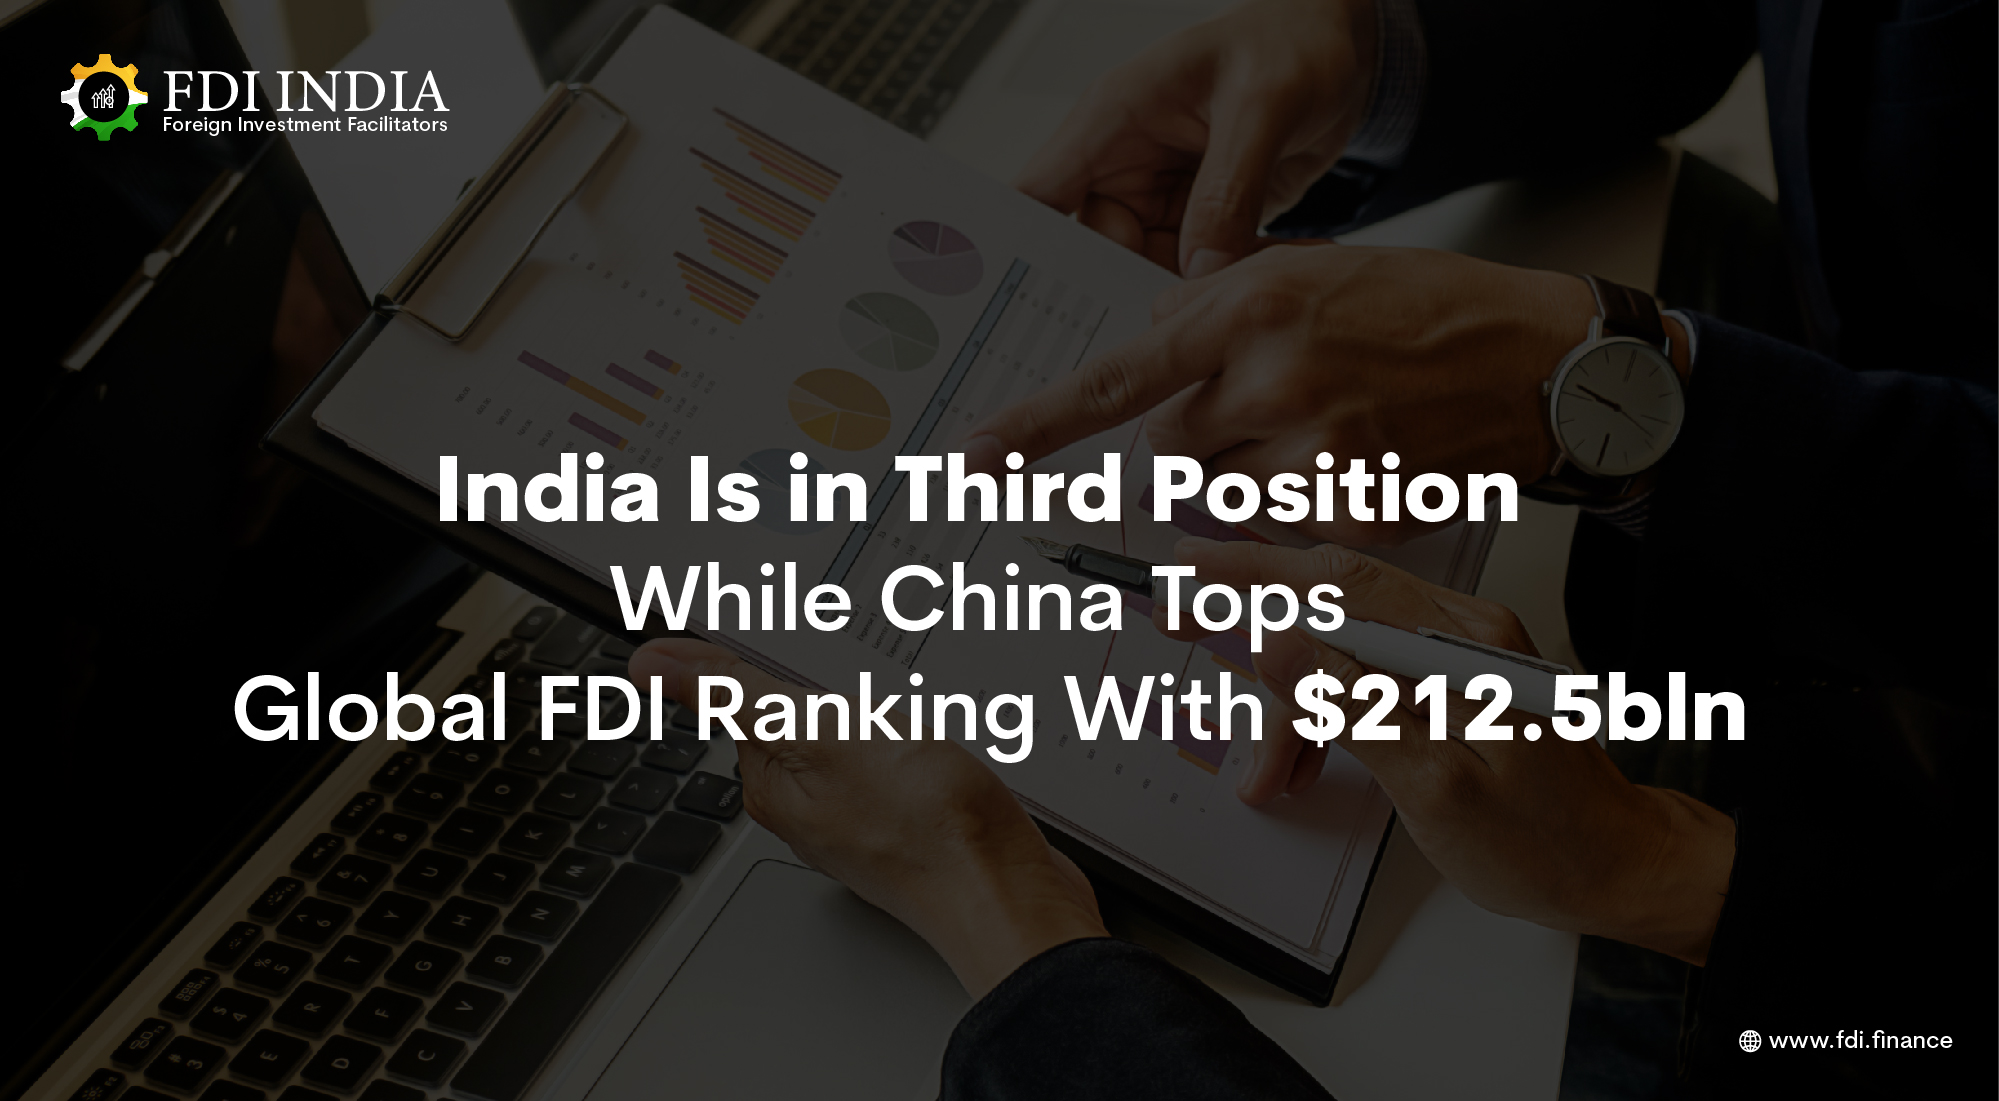 India Is in Third Position While China Tops Global FDI Ranking With $212.5bln